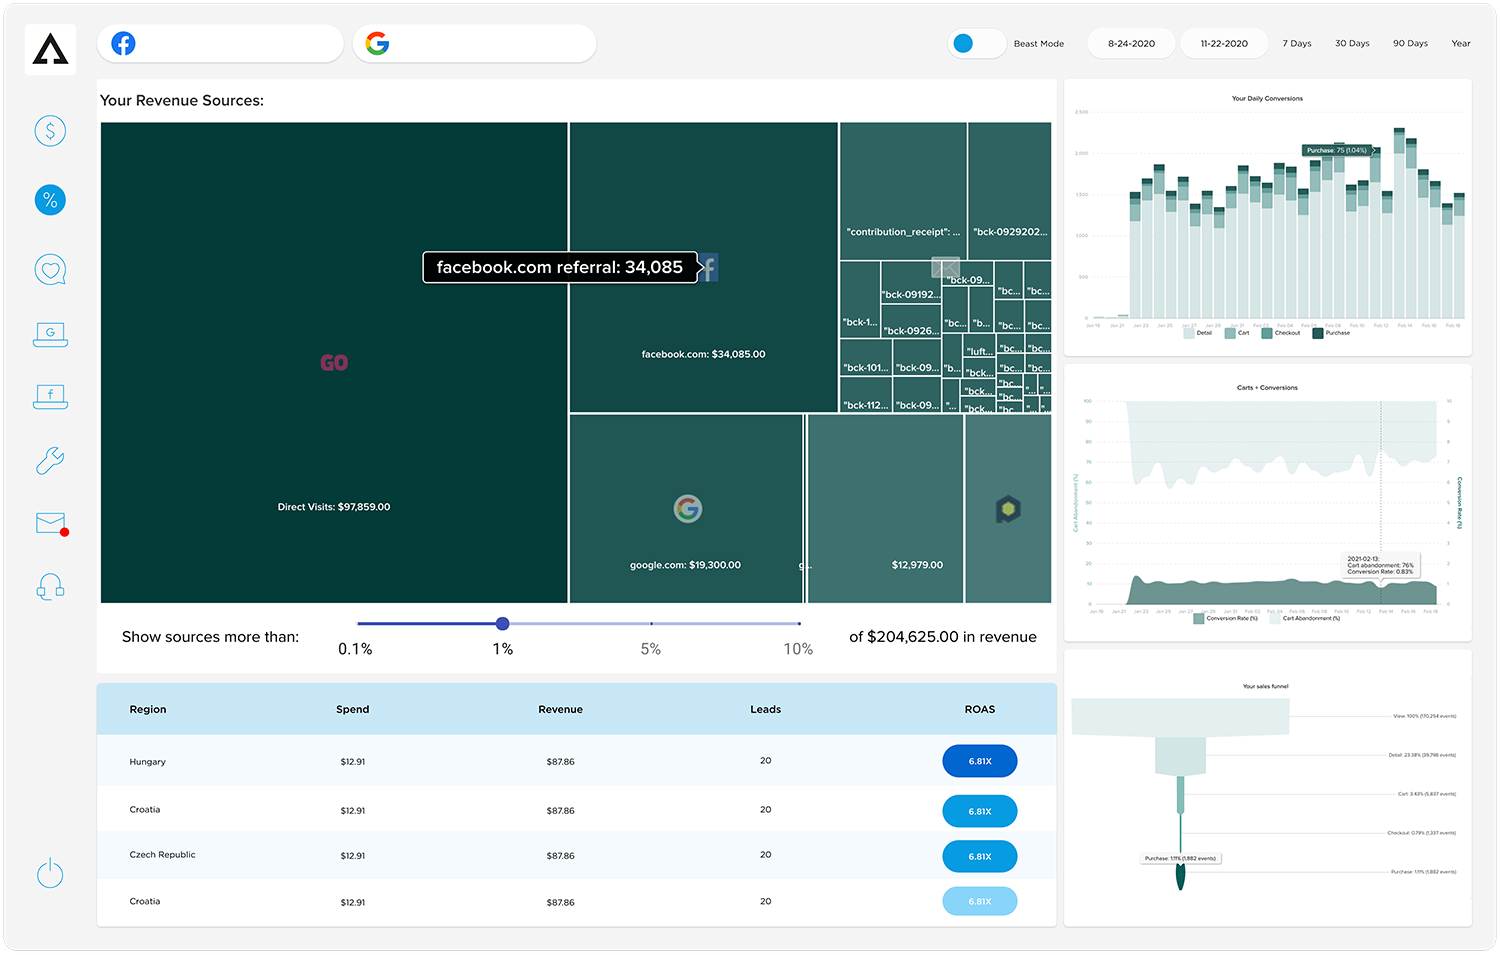 Aphrodite Software - Conversions Dashboard, featuring revenue sources breakdown & funnel optimization. Boost your customer flow with our clear and implementable insights.